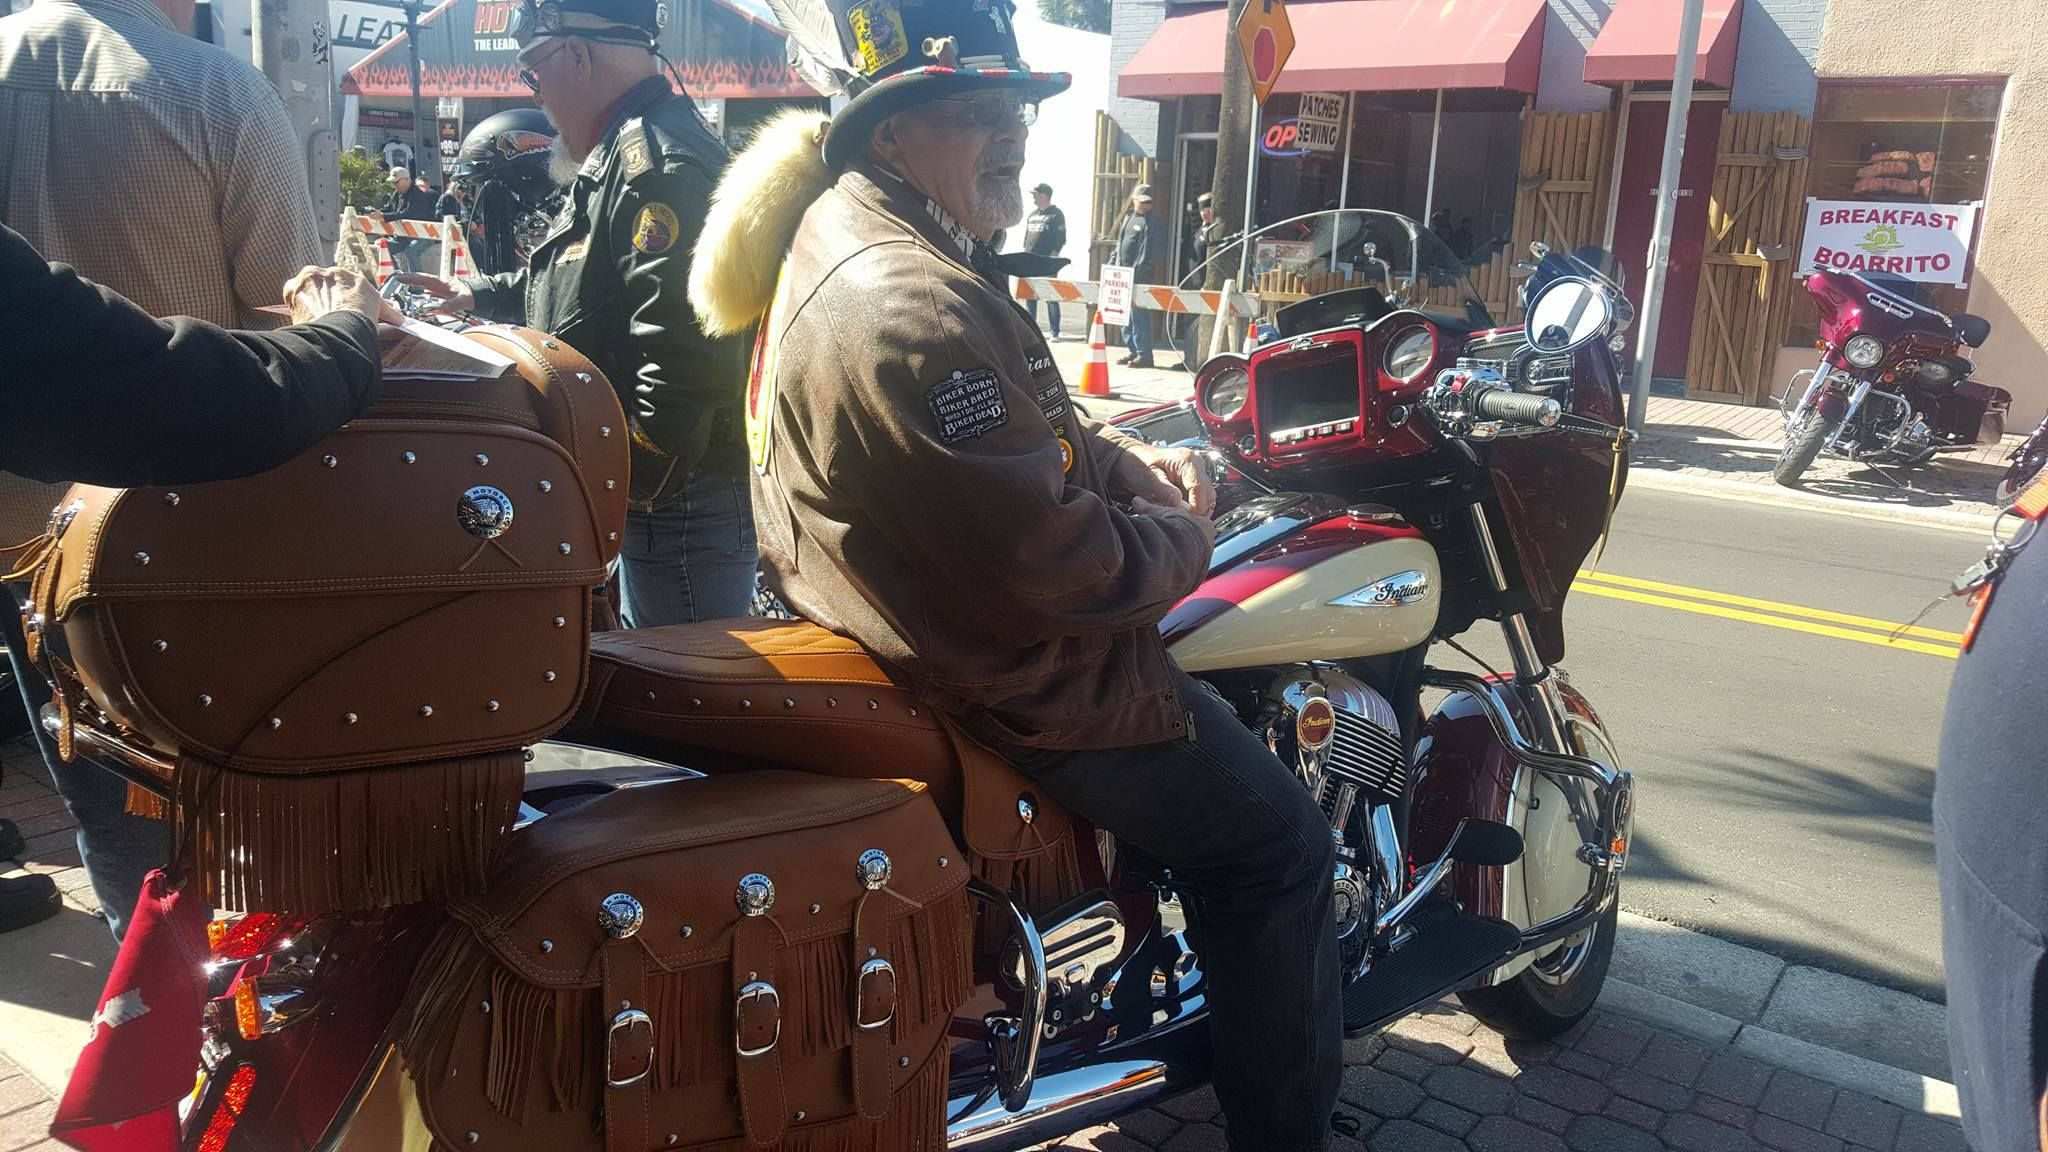 2017 Indian Motorcycle Chieftain Equipped With Tan Leather Bags